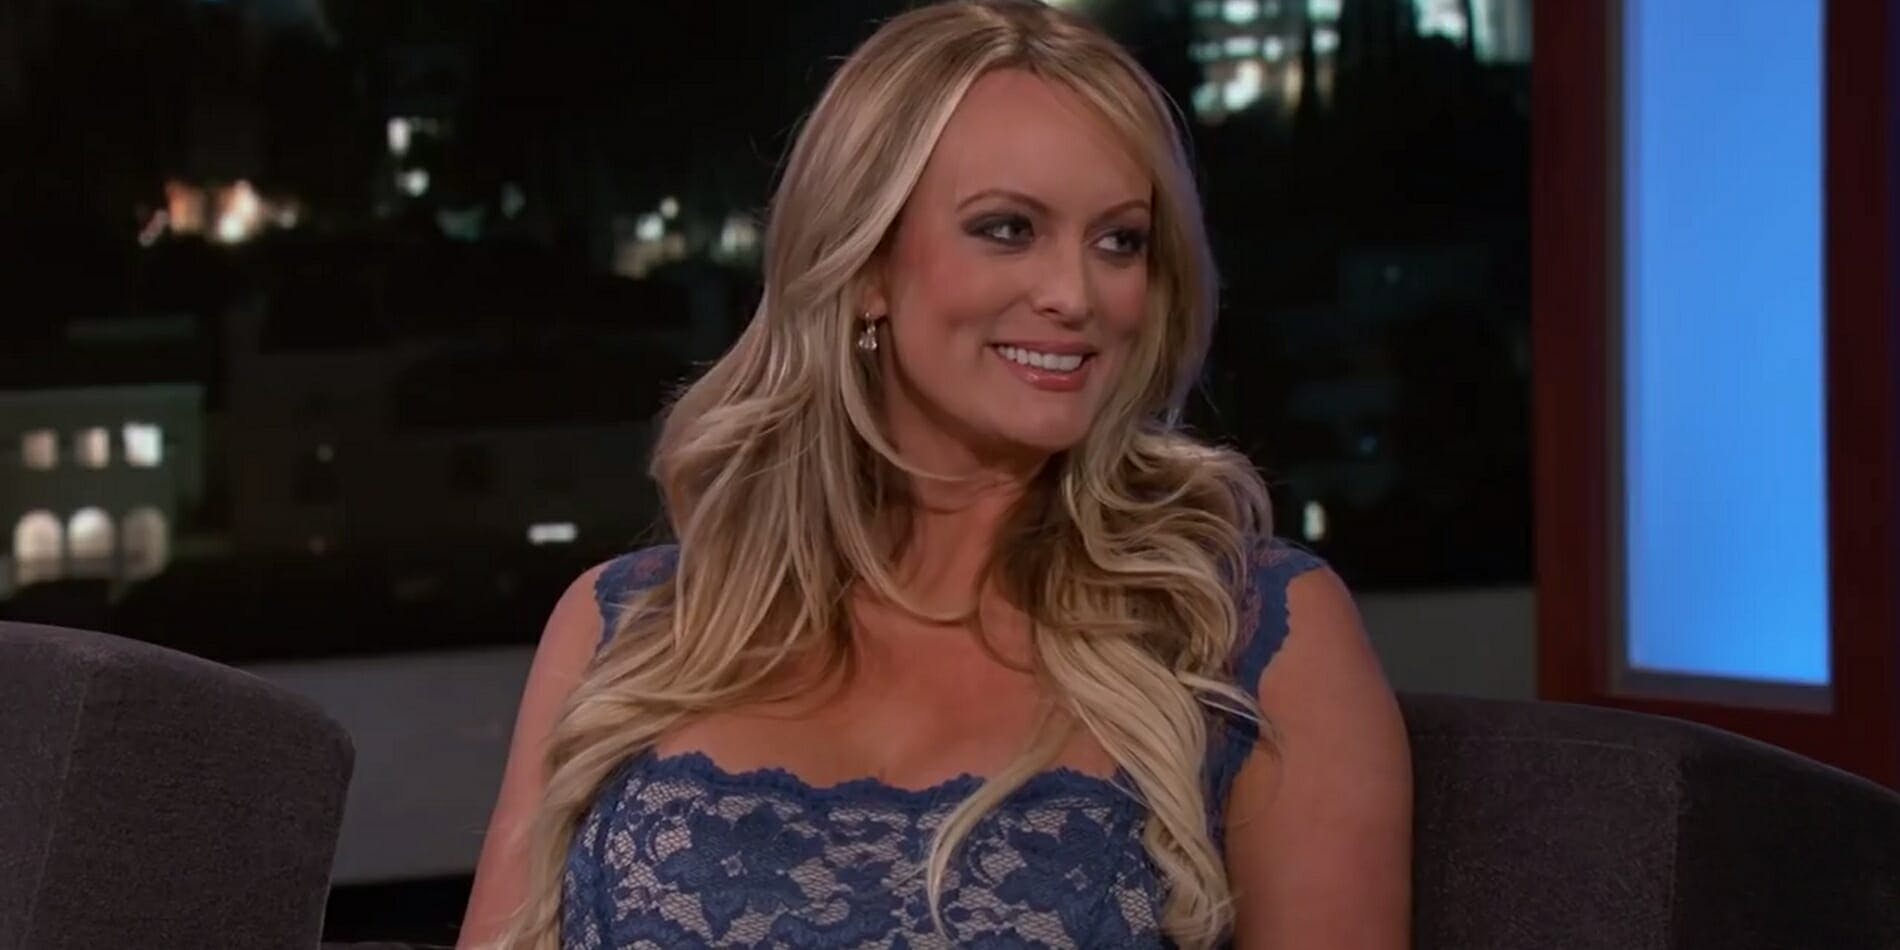 who is stormy daniels